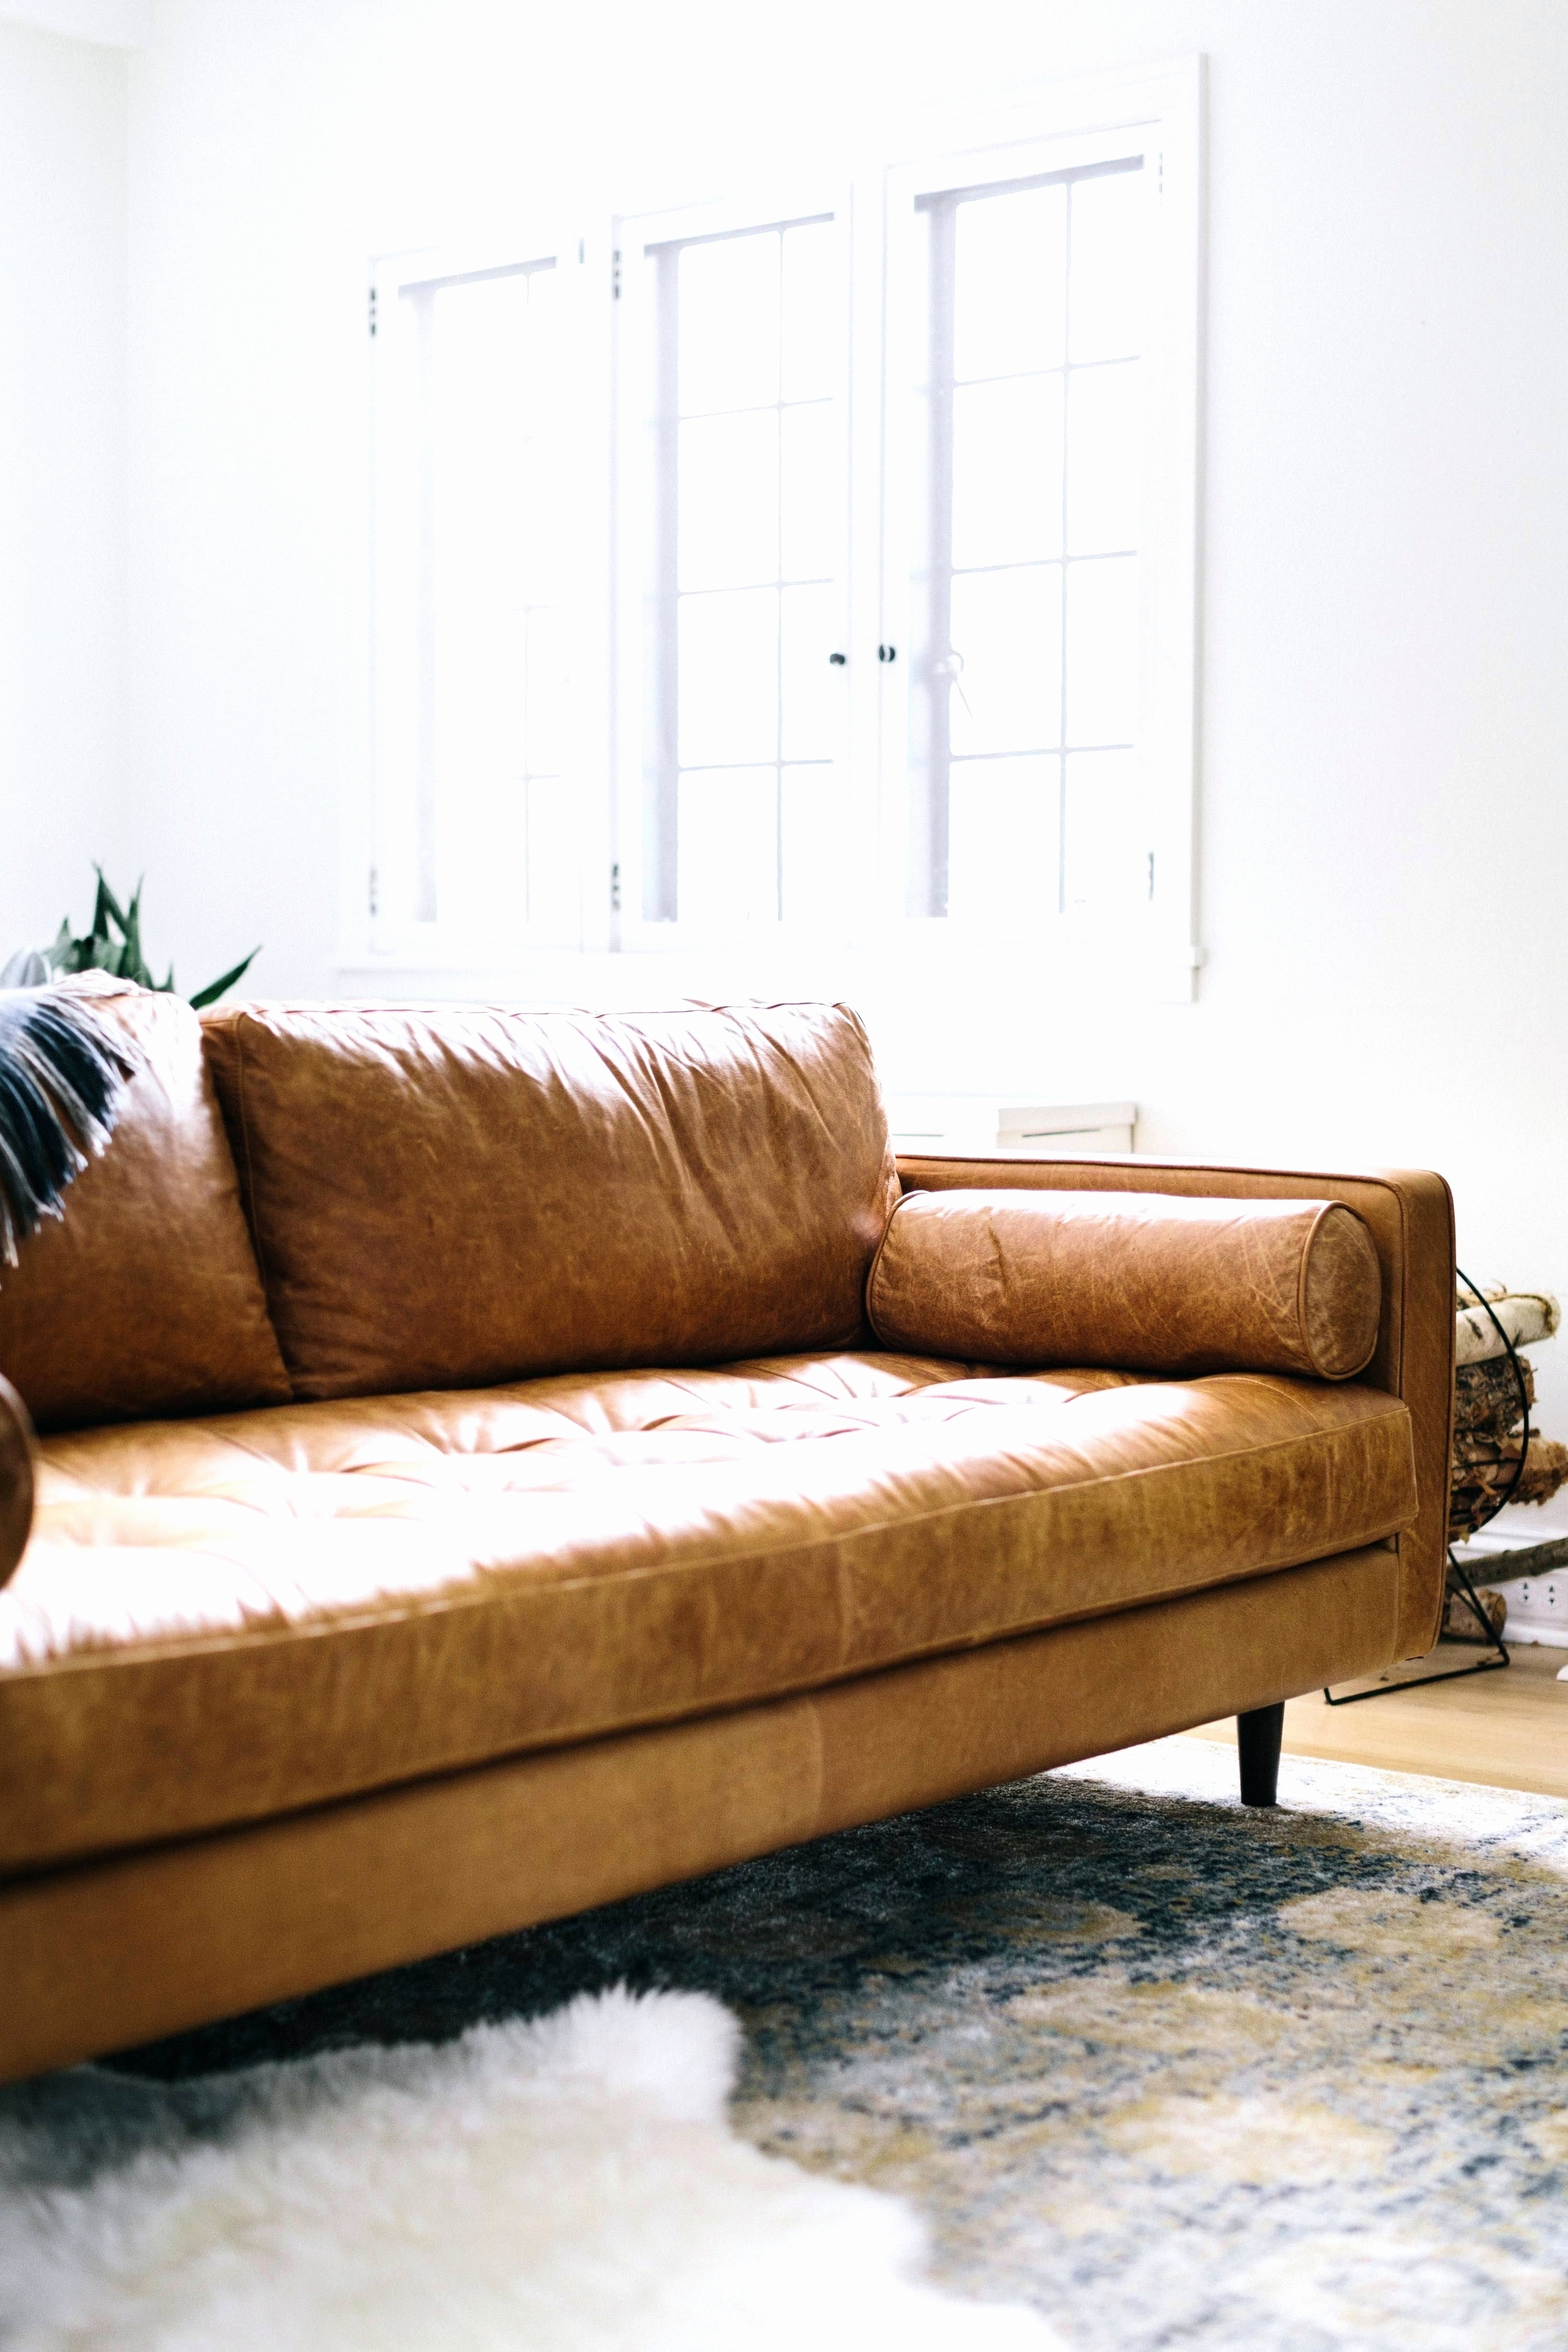 Sectional Sofas Kitchener The Best Kijiji Kitchener Sectional Sofas